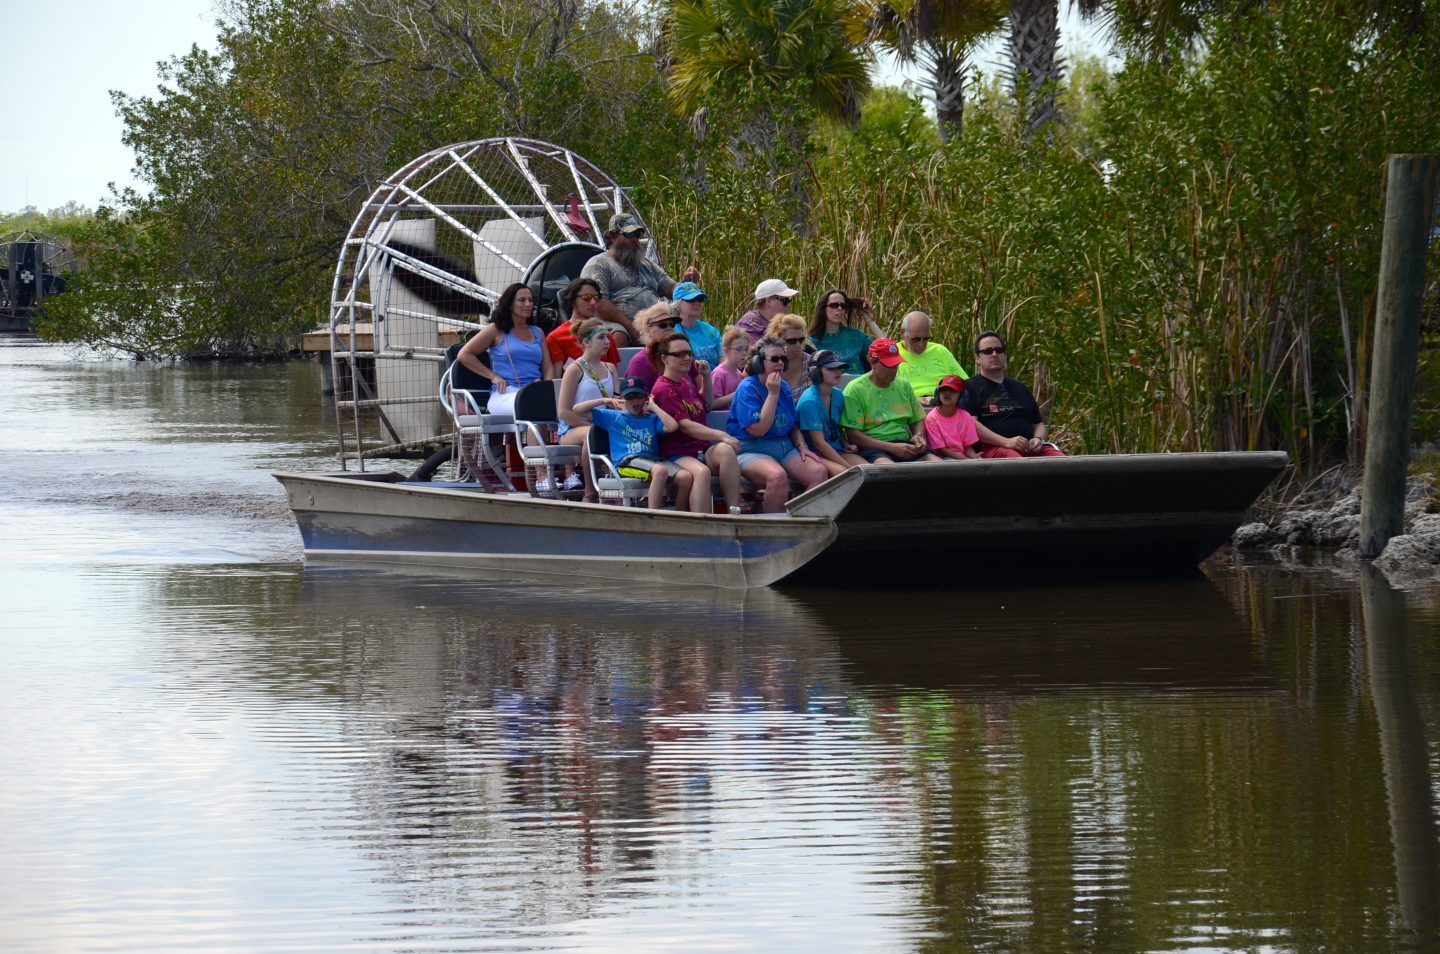 Taking an airboat ride not in New Orleans but in Florida!